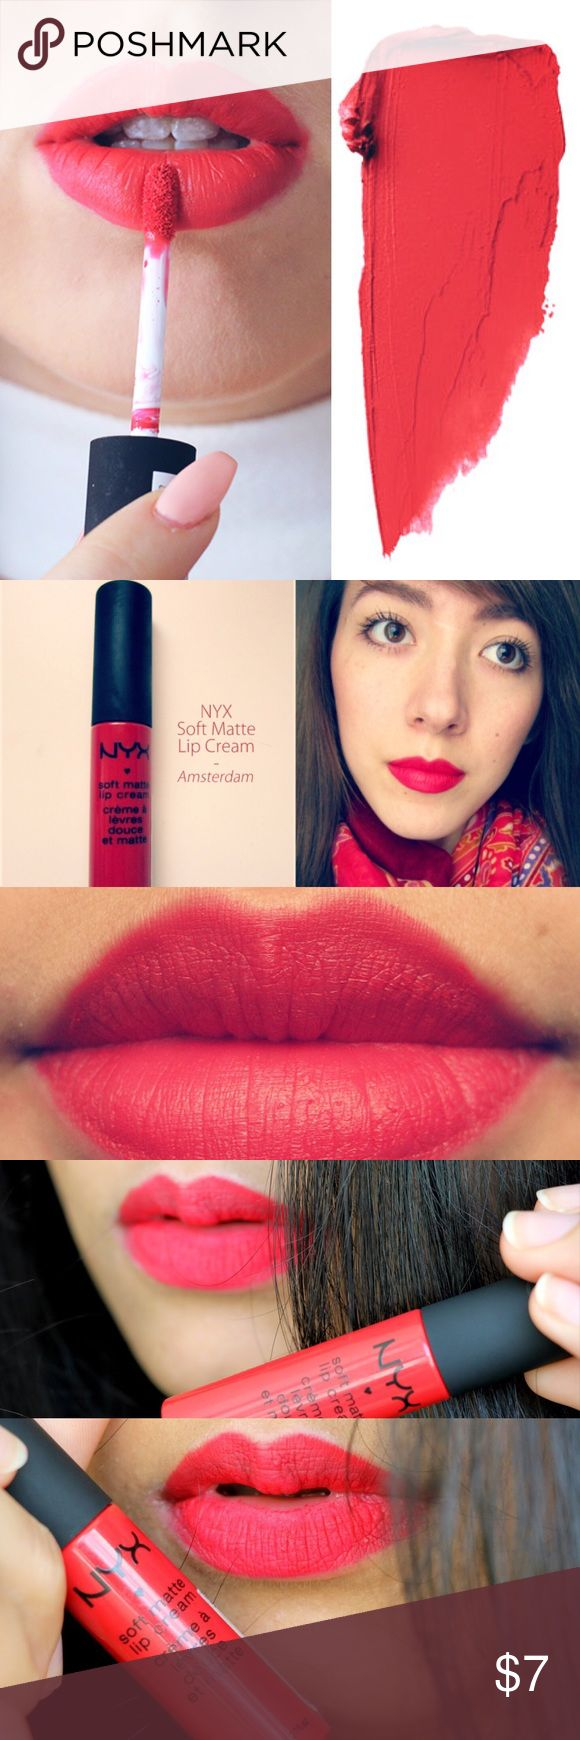 🔅NYX *AMSTERDAM* Soft Matte Lip Cream🔅W/GIFTS🎁 🔅NYX LIP CREAM IN *AMSTERDAM*🔅BRAND NEW & UNOPENED🔅NYXs new velvety smooth matte lip creams deliver a *burst* of creamy color & sets into a stunning matte finish! Surprisingly durable, lightweight & delightfully creamy, its no wonder this sweetly scented formula is an NYX FAN FAVORITE!🔅INCLUDES CUTE FREE NEW GIFTS🔅BUNDLE ONLY 3 ITEMS FOR AN *ADDITIONAL* 15% OFF UR ENTIRE ORDER NOW & GET FREE NYX PRODUCT!!🔅EXPEDITED SHIPPING🔅ASK ME…